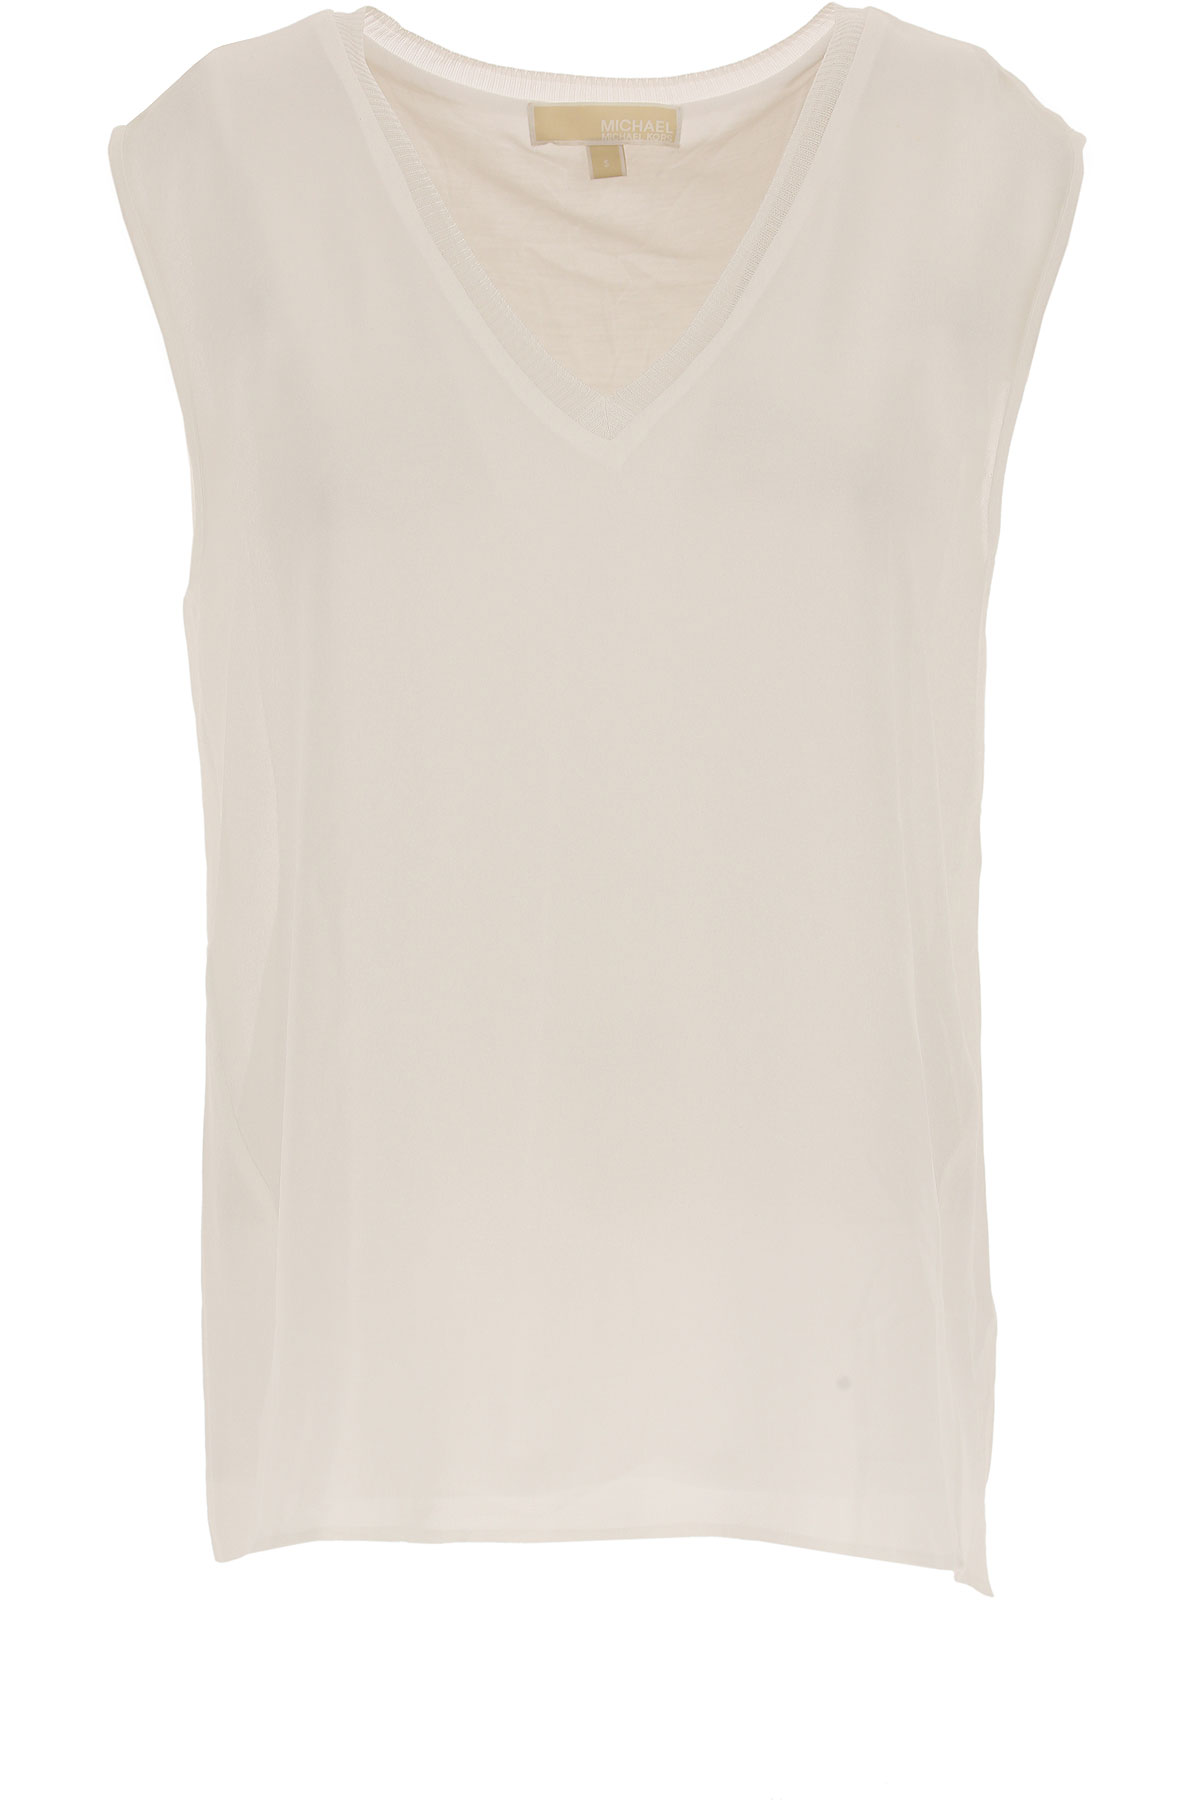 Michael Kors Top for Women On Sale in Outlet, White, polyester, 2019, 4 6 8